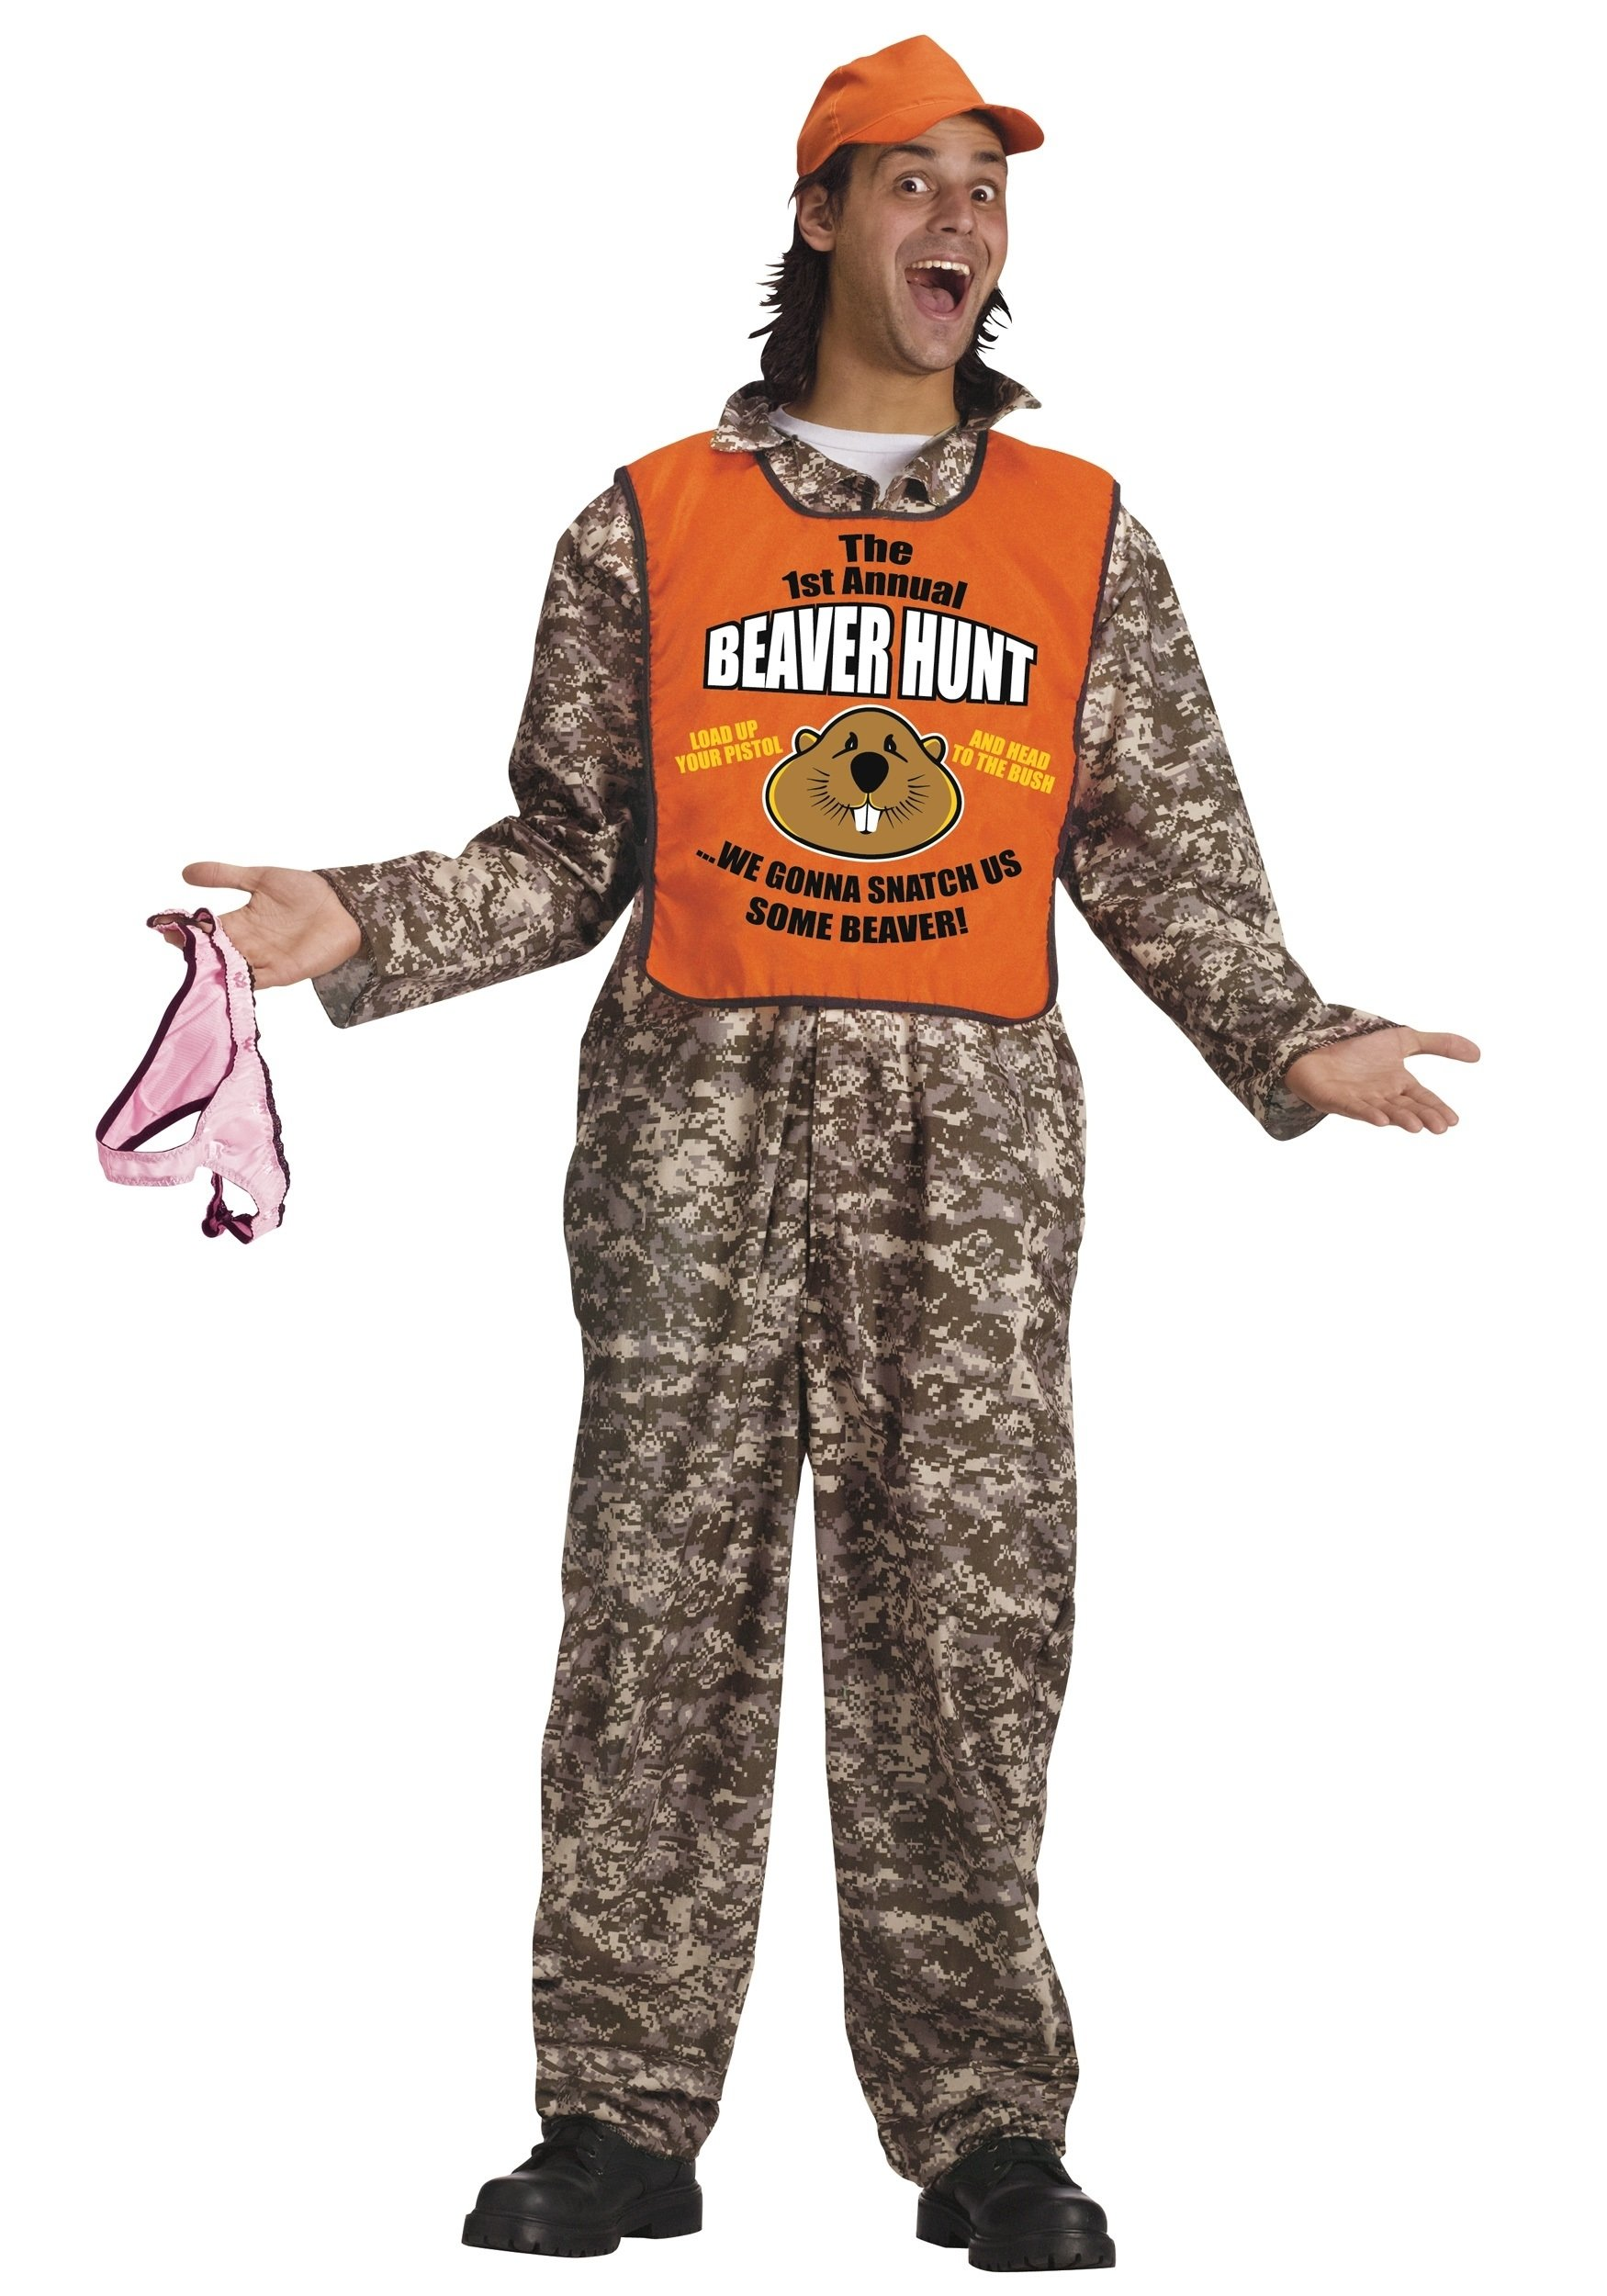 10 Most Recommended Awesome Costume Ideas For Men guy costumes for halloween the halloween 2021